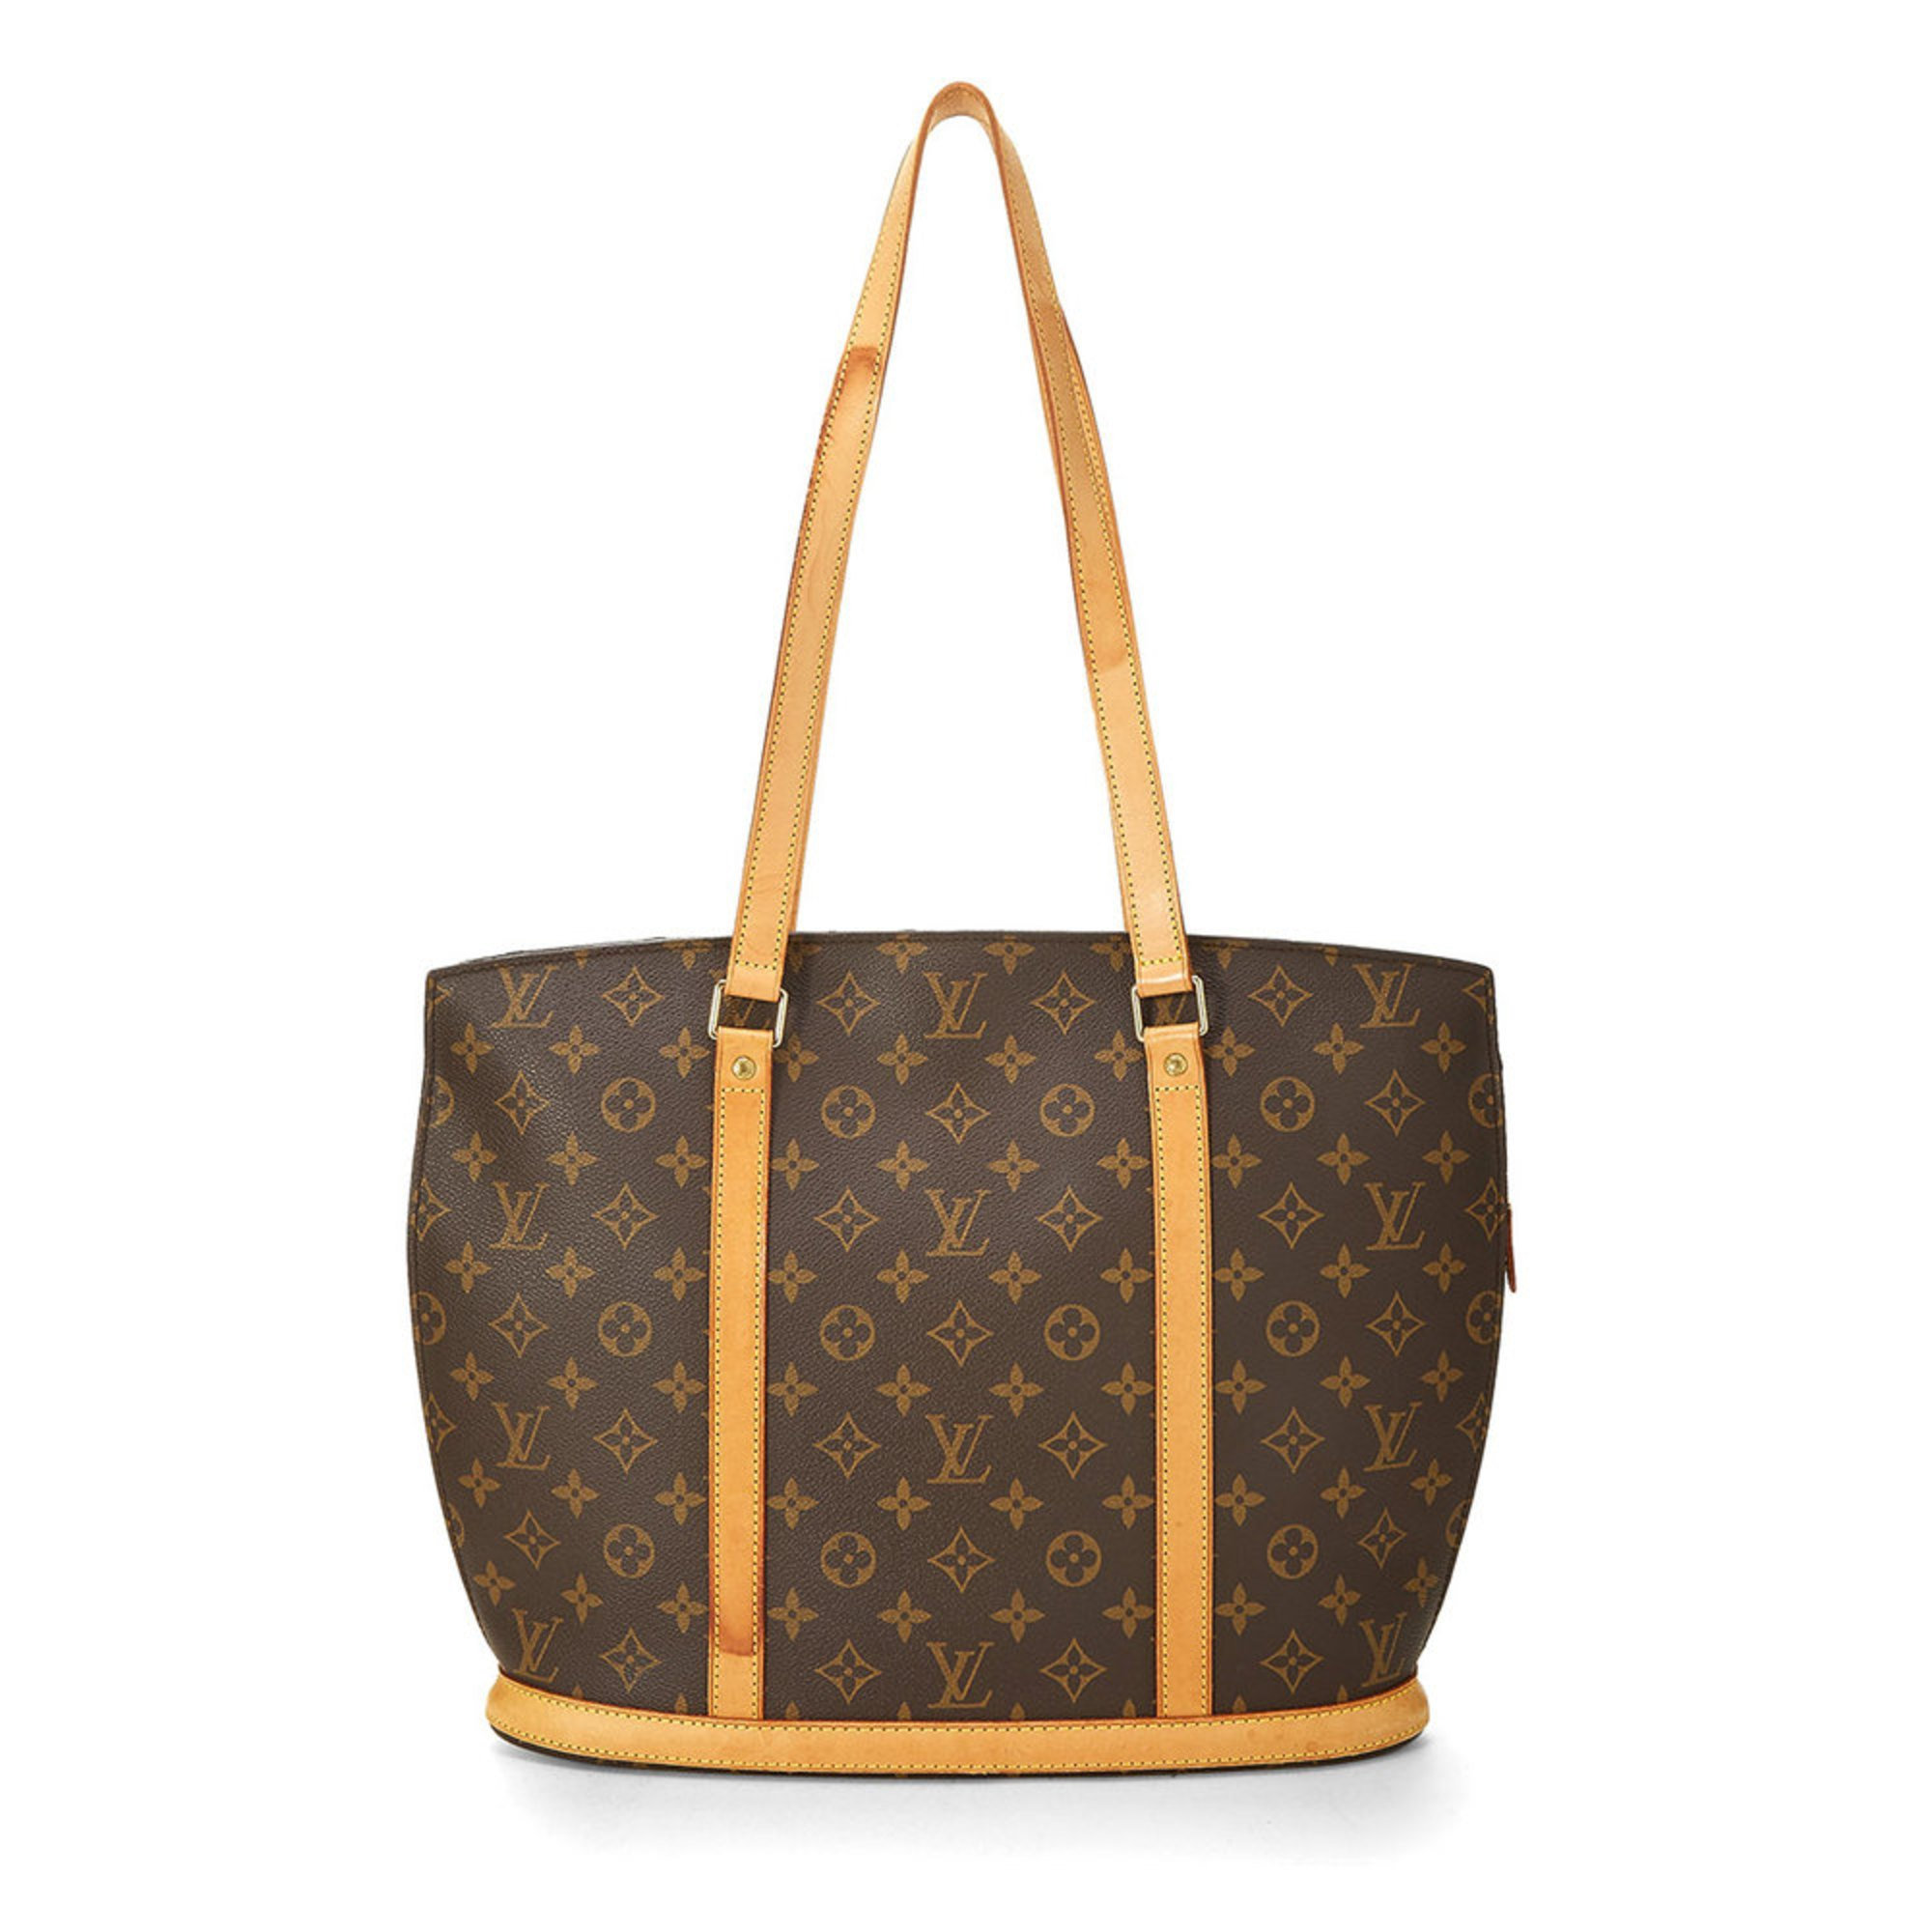 ee9a57887202 Louis Vuitton Monogram Babylone | Totes | Accessories - Shop Your ...